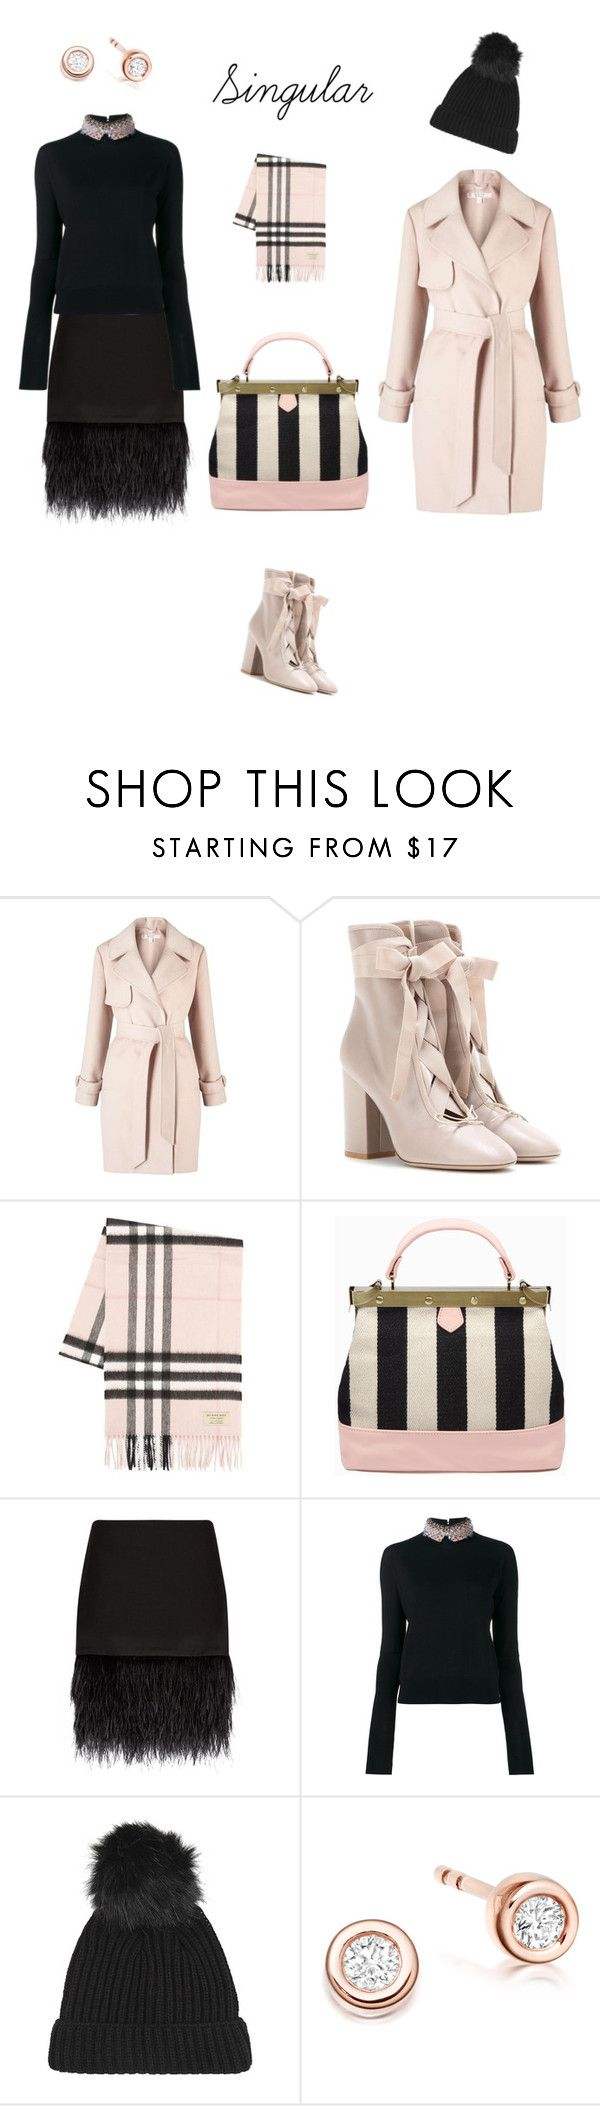 """""""Singular"""" by sony-effe ❤ liked on Polyvore featuring Miss Selfridge, Valentino, Burberry, Tammy & Benjamin, Polo Ralph Lauren, Marni and Topshop"""